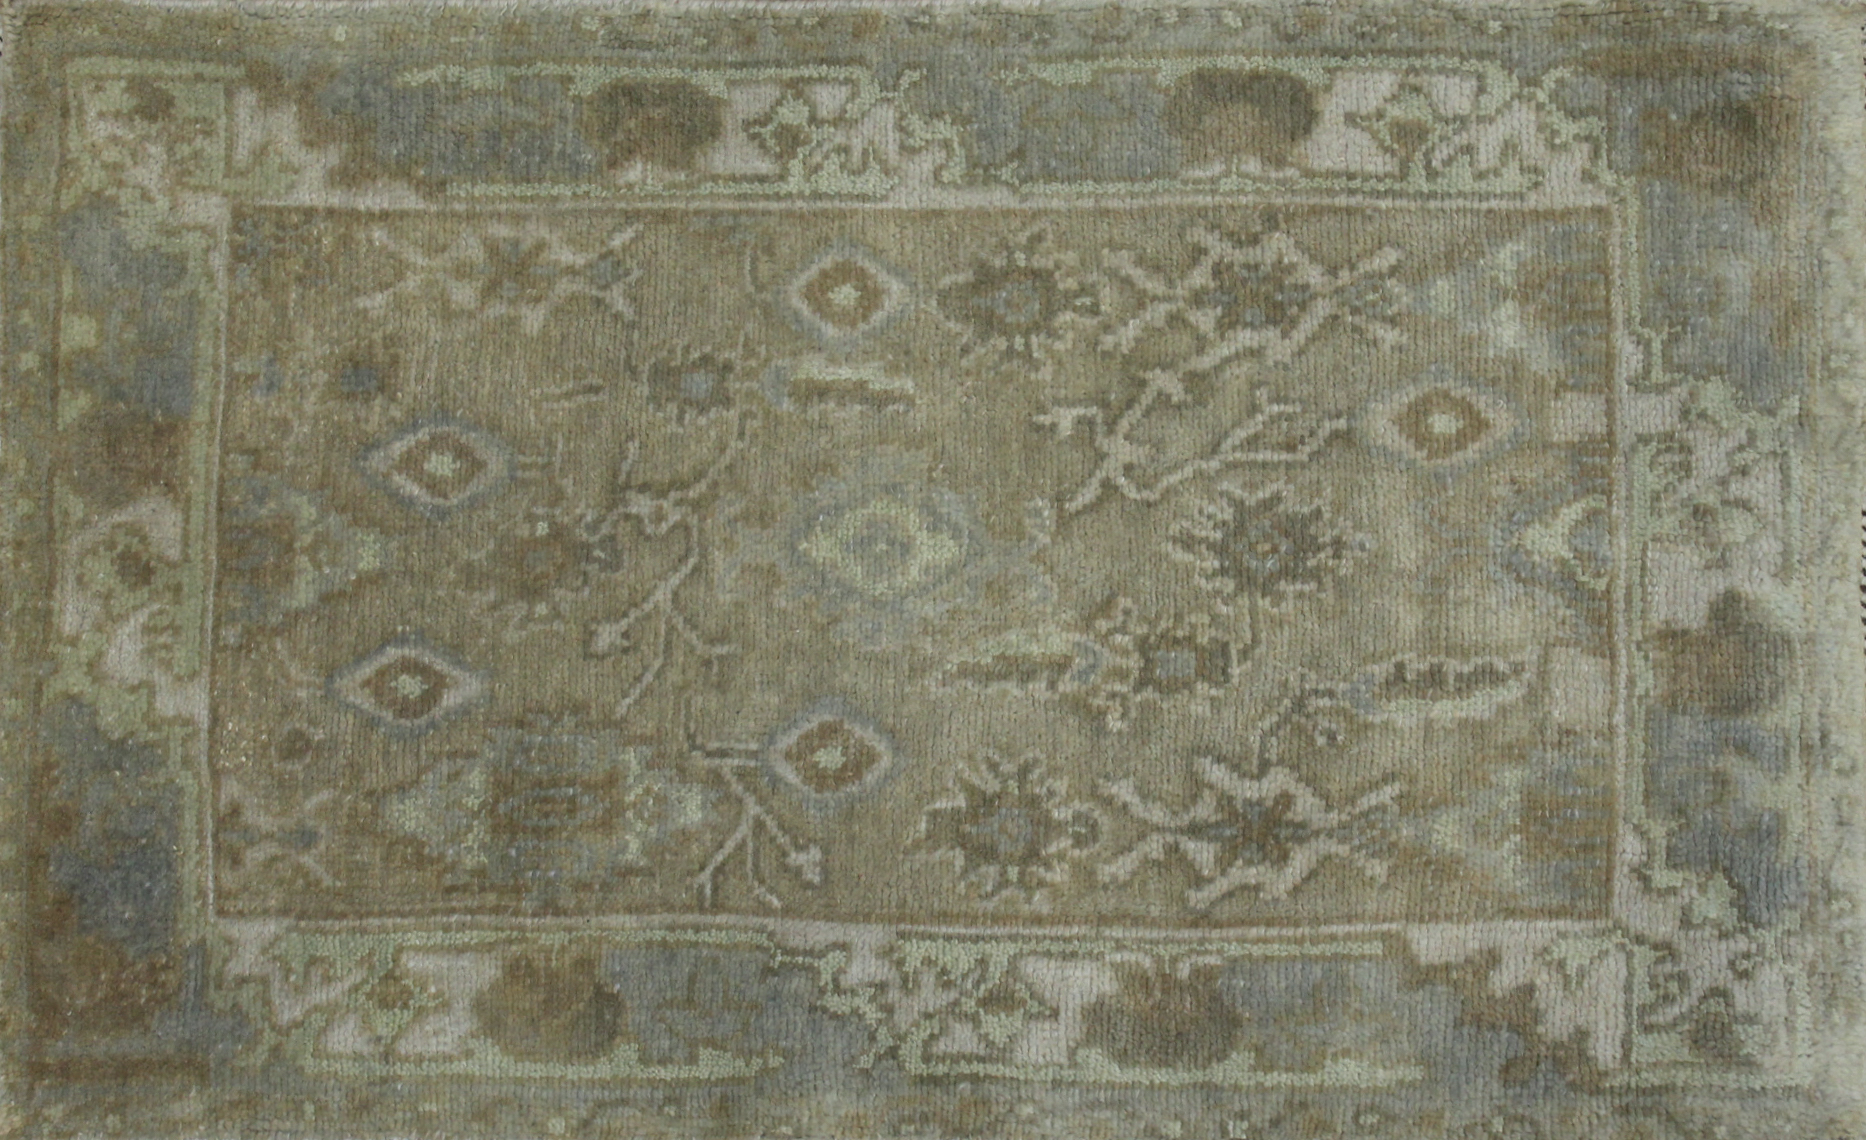 2X3 Oushak Hand Knotted Wool Area Rug - MR023496